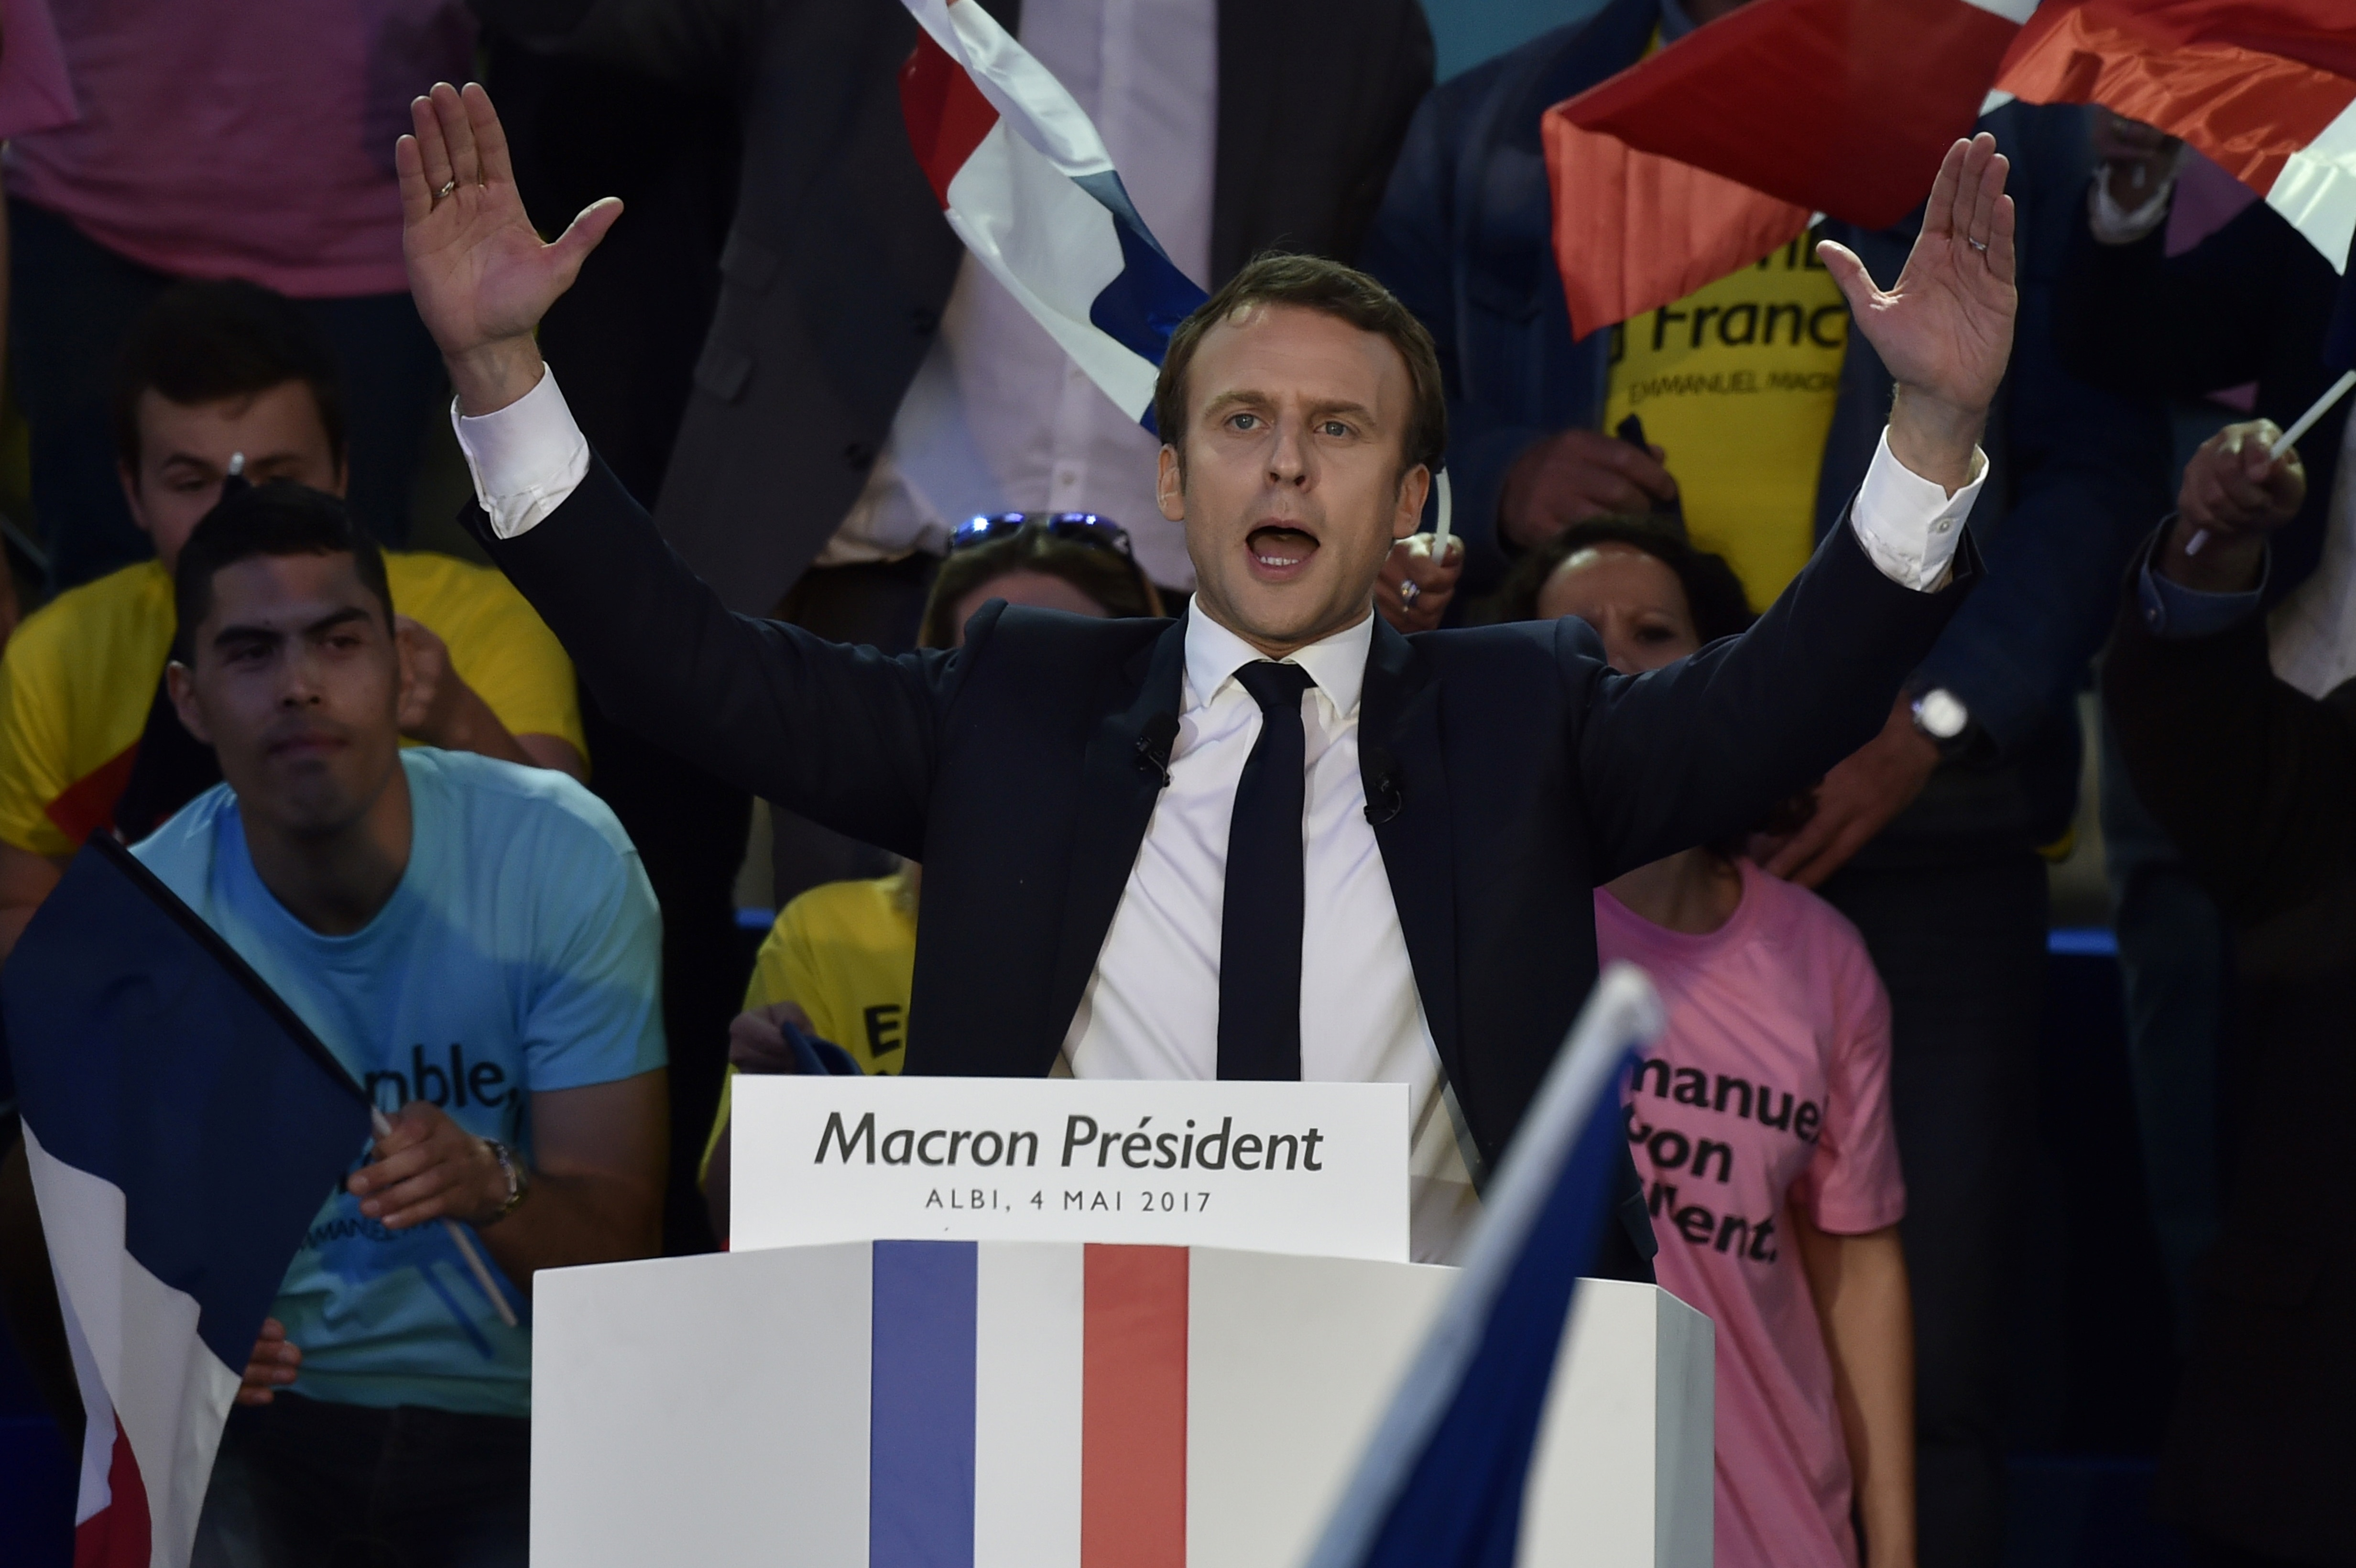 French presidential candidate Emmanuel Macron delivers a speech during a campaign meeting on May 4, 2017. (Pascal Pavani/AFP/Getty Images)